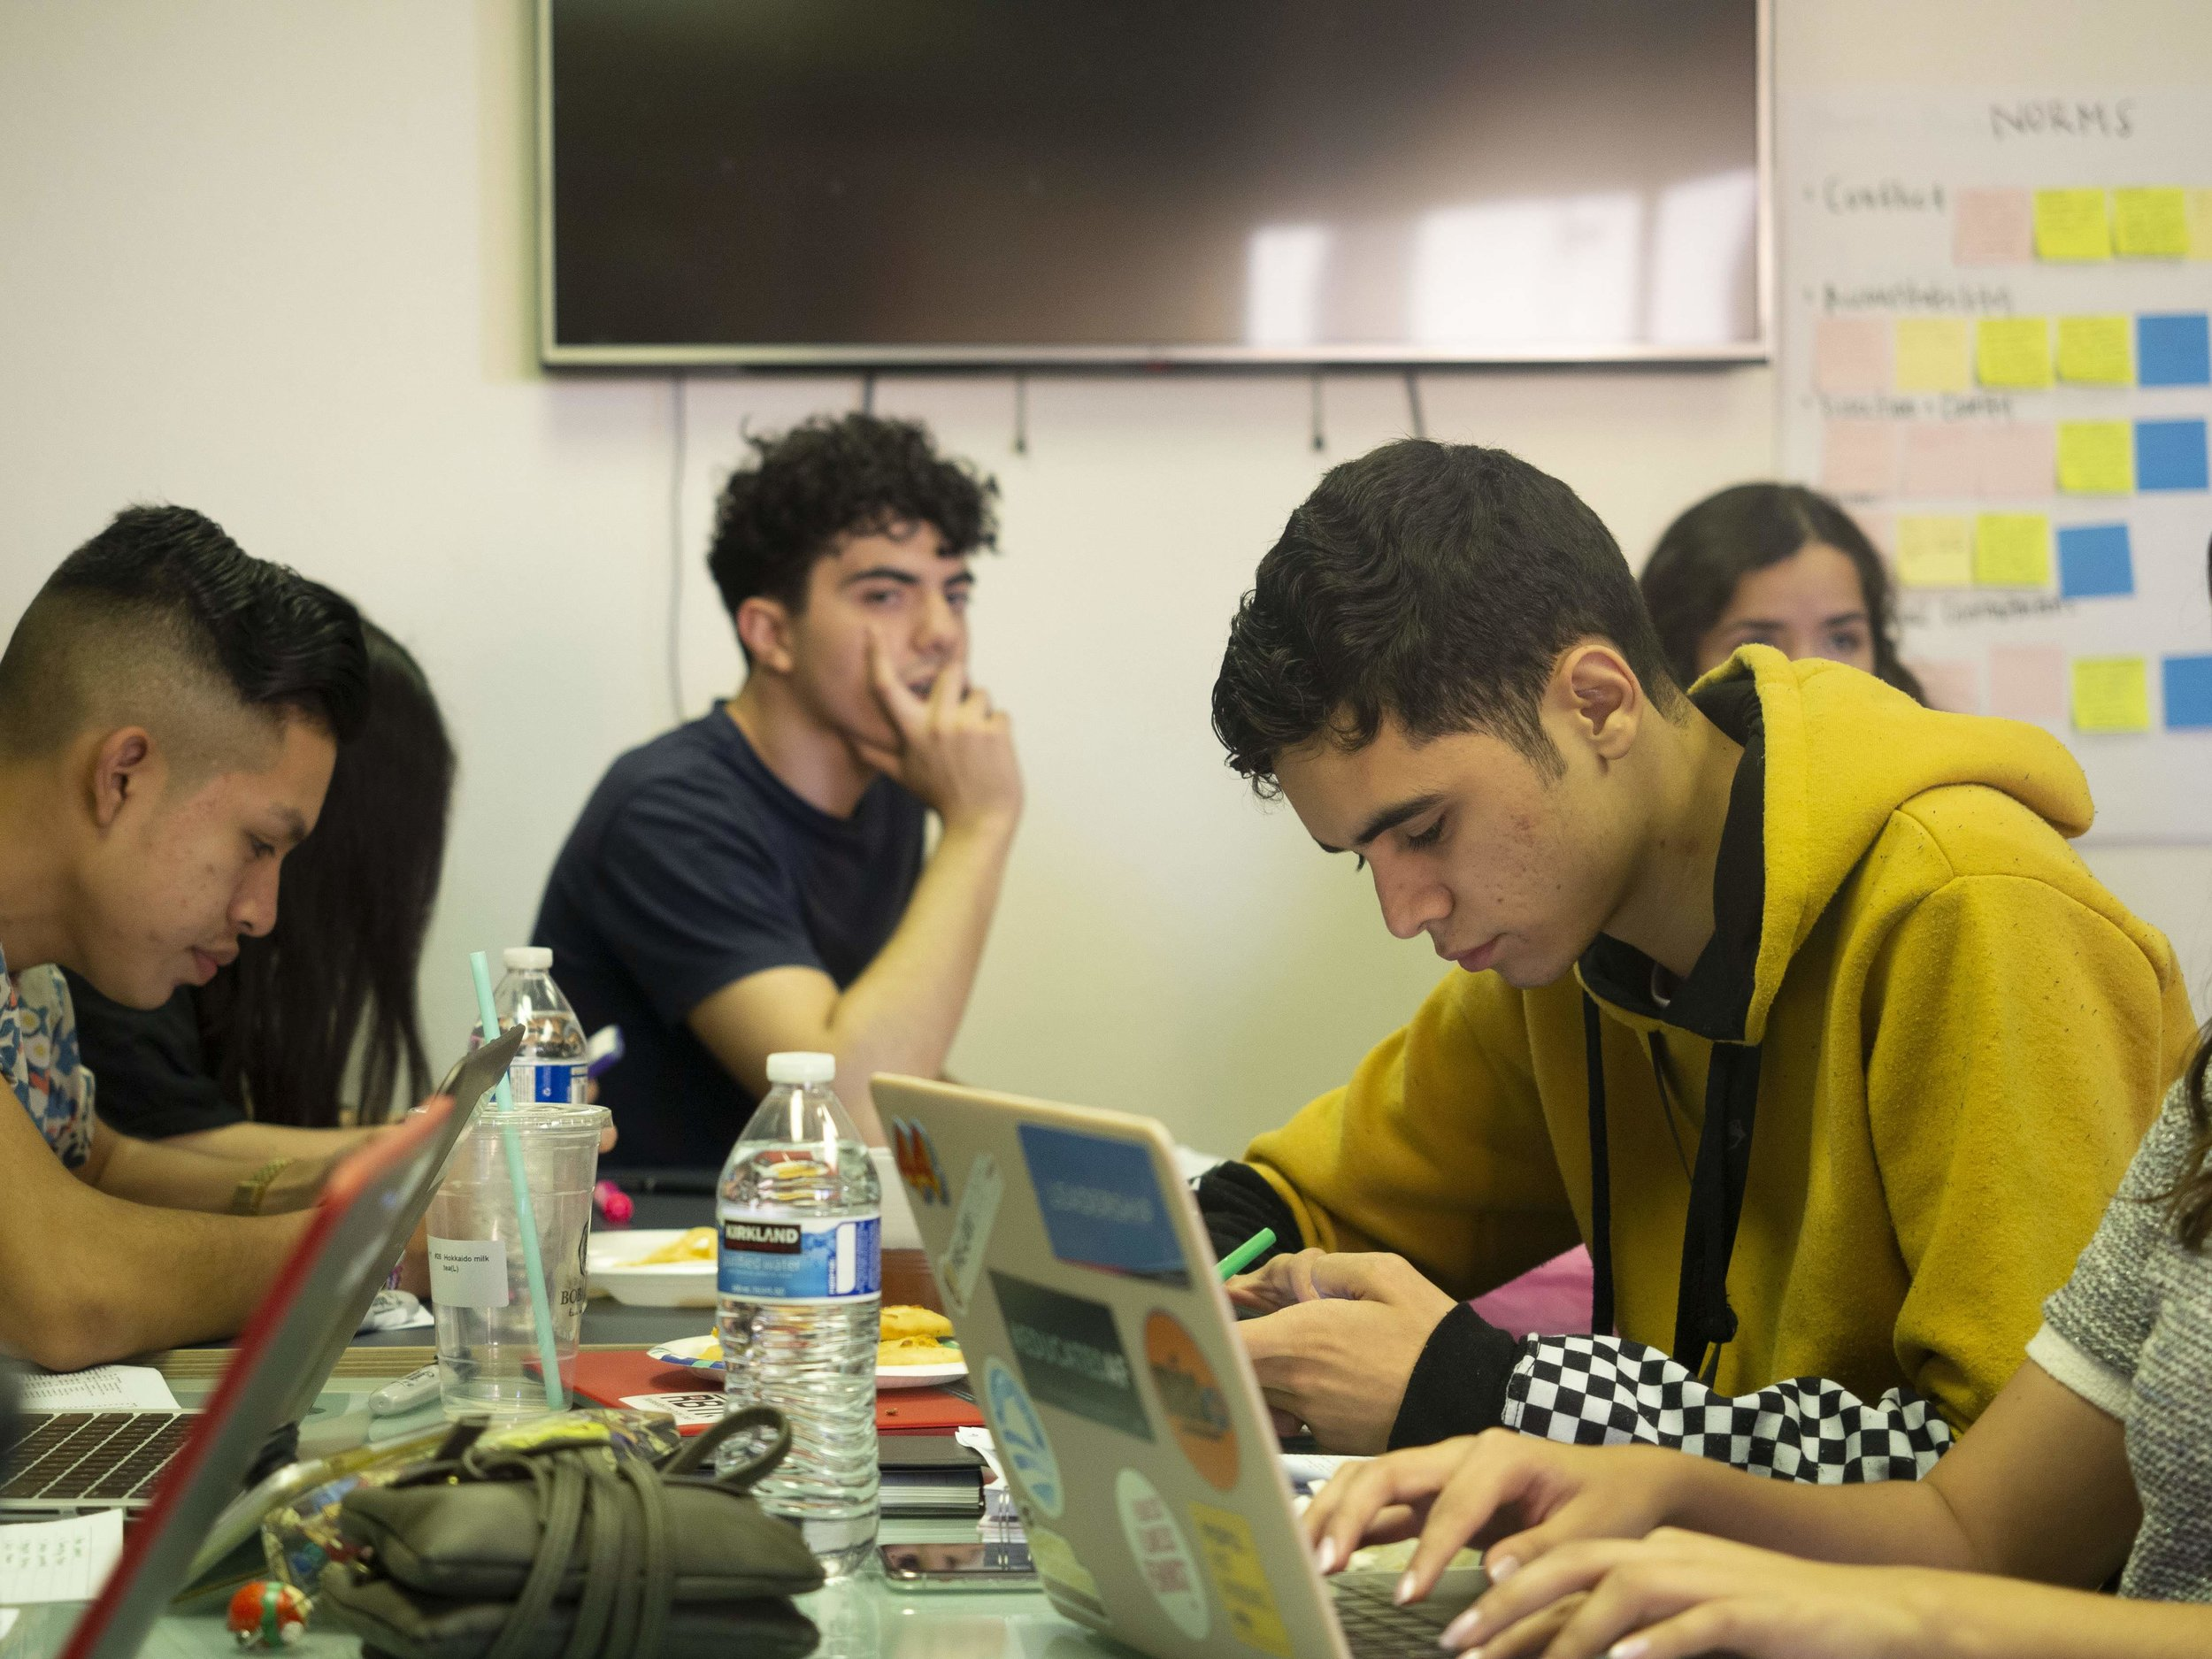 Saul working along side the Fellows at Aliento.